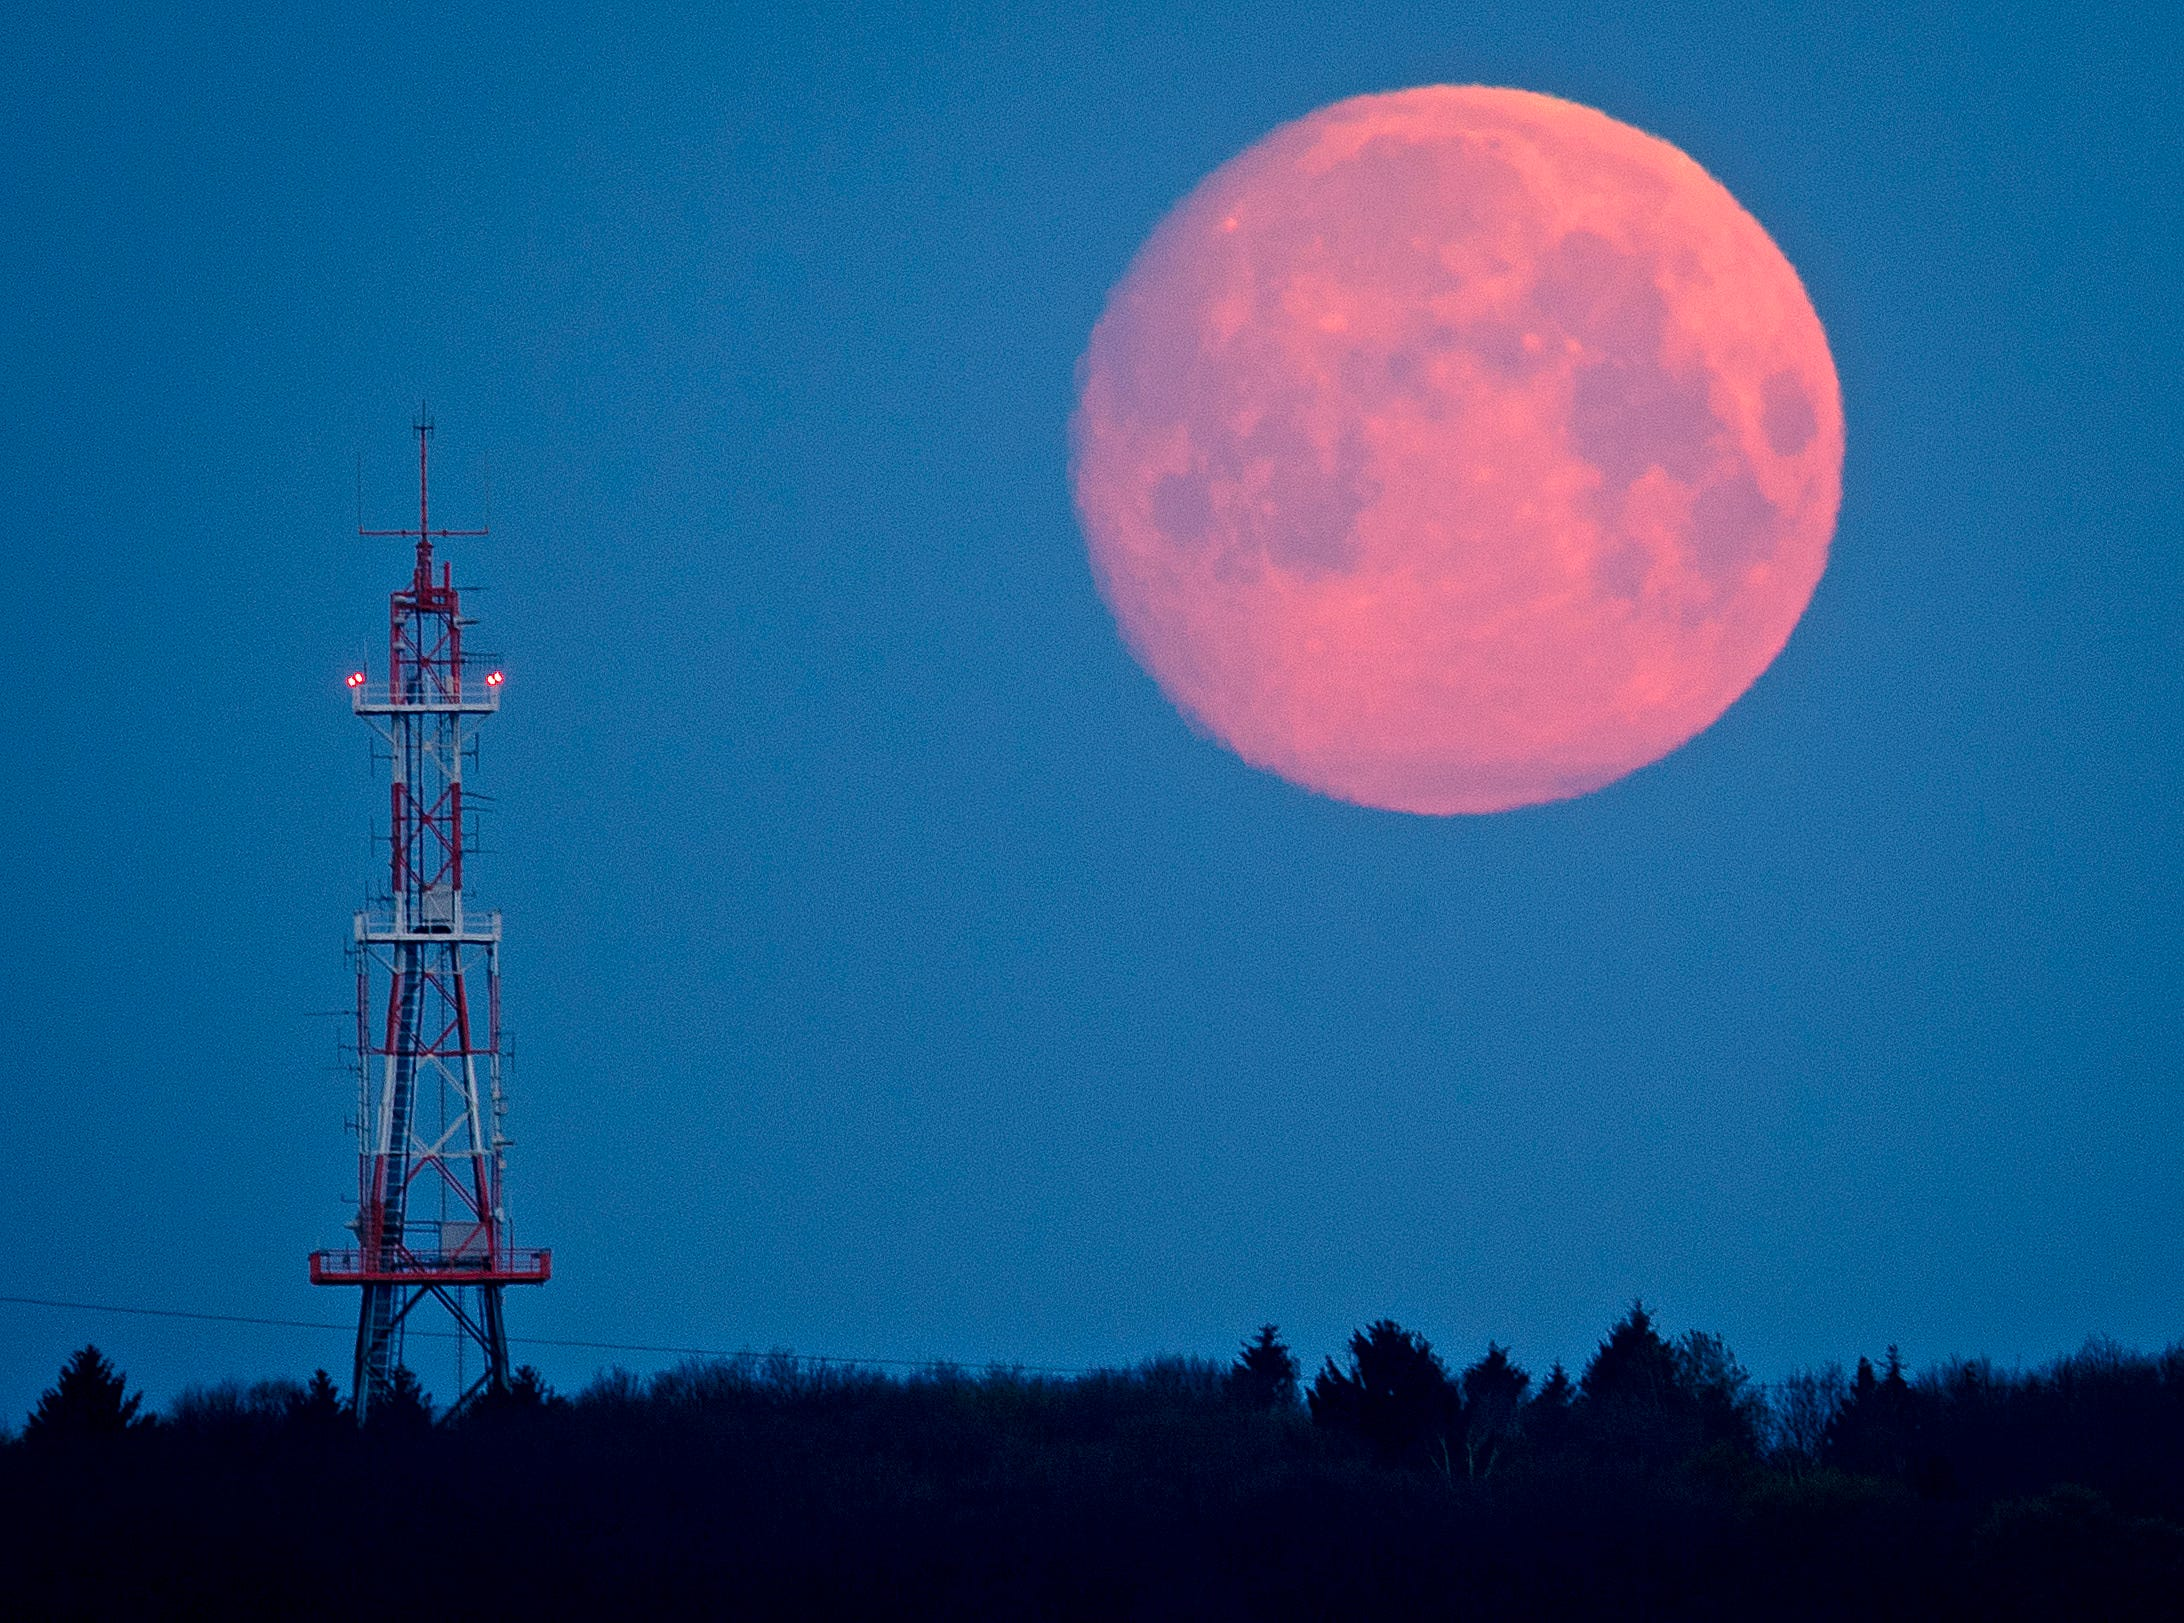 The moon goes down over the Taunus mountains near Frankfurt, Germany, early Thursday, April 18, 2019.